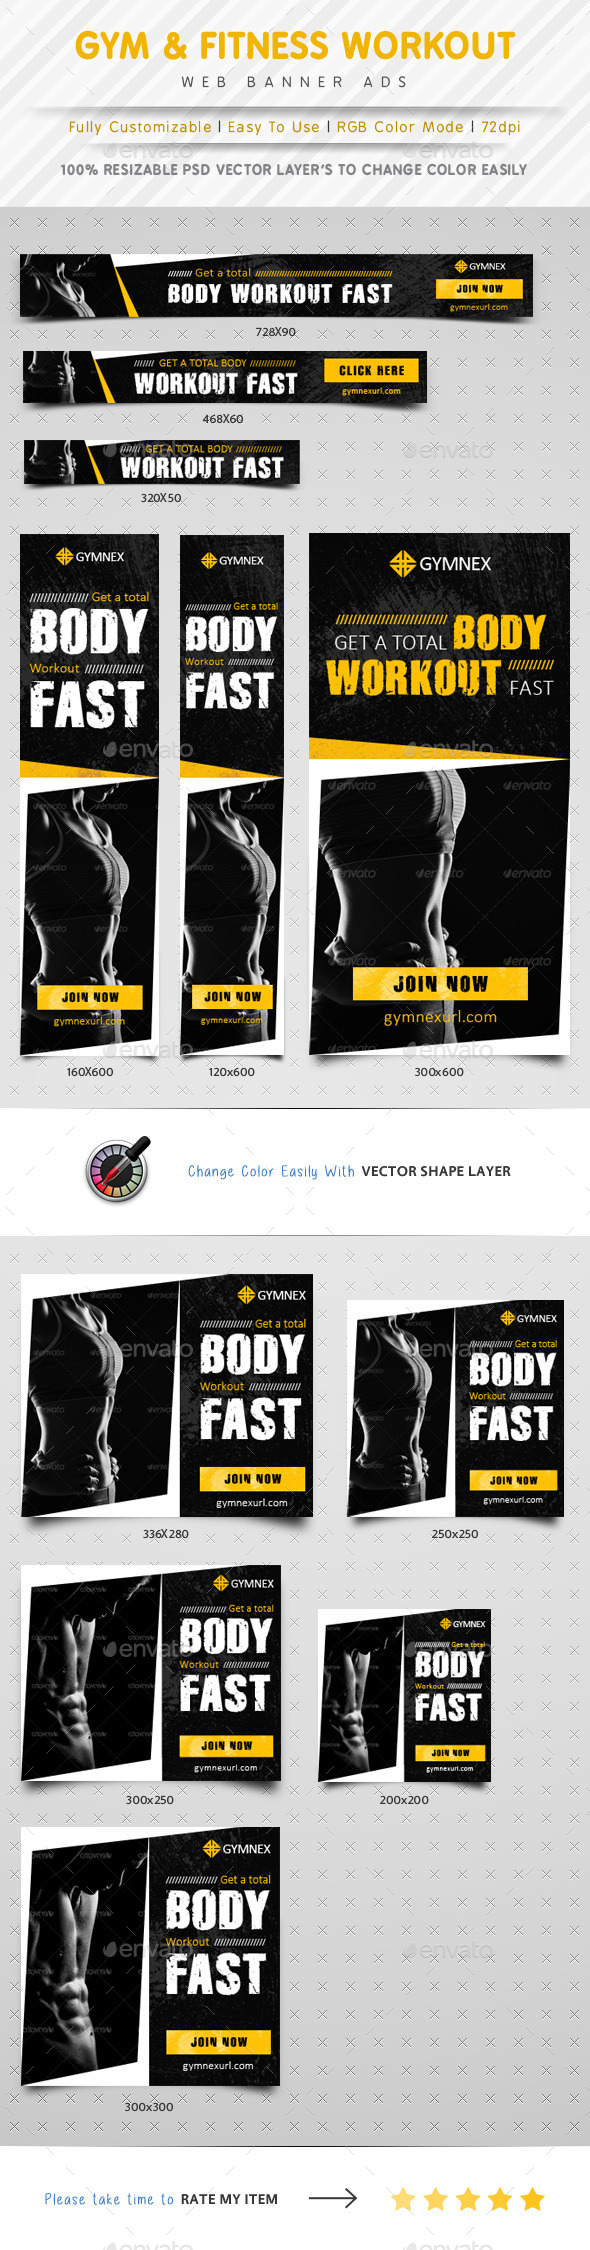 GraphicRiver GYM & Fitness Web Banner Ads 10056184